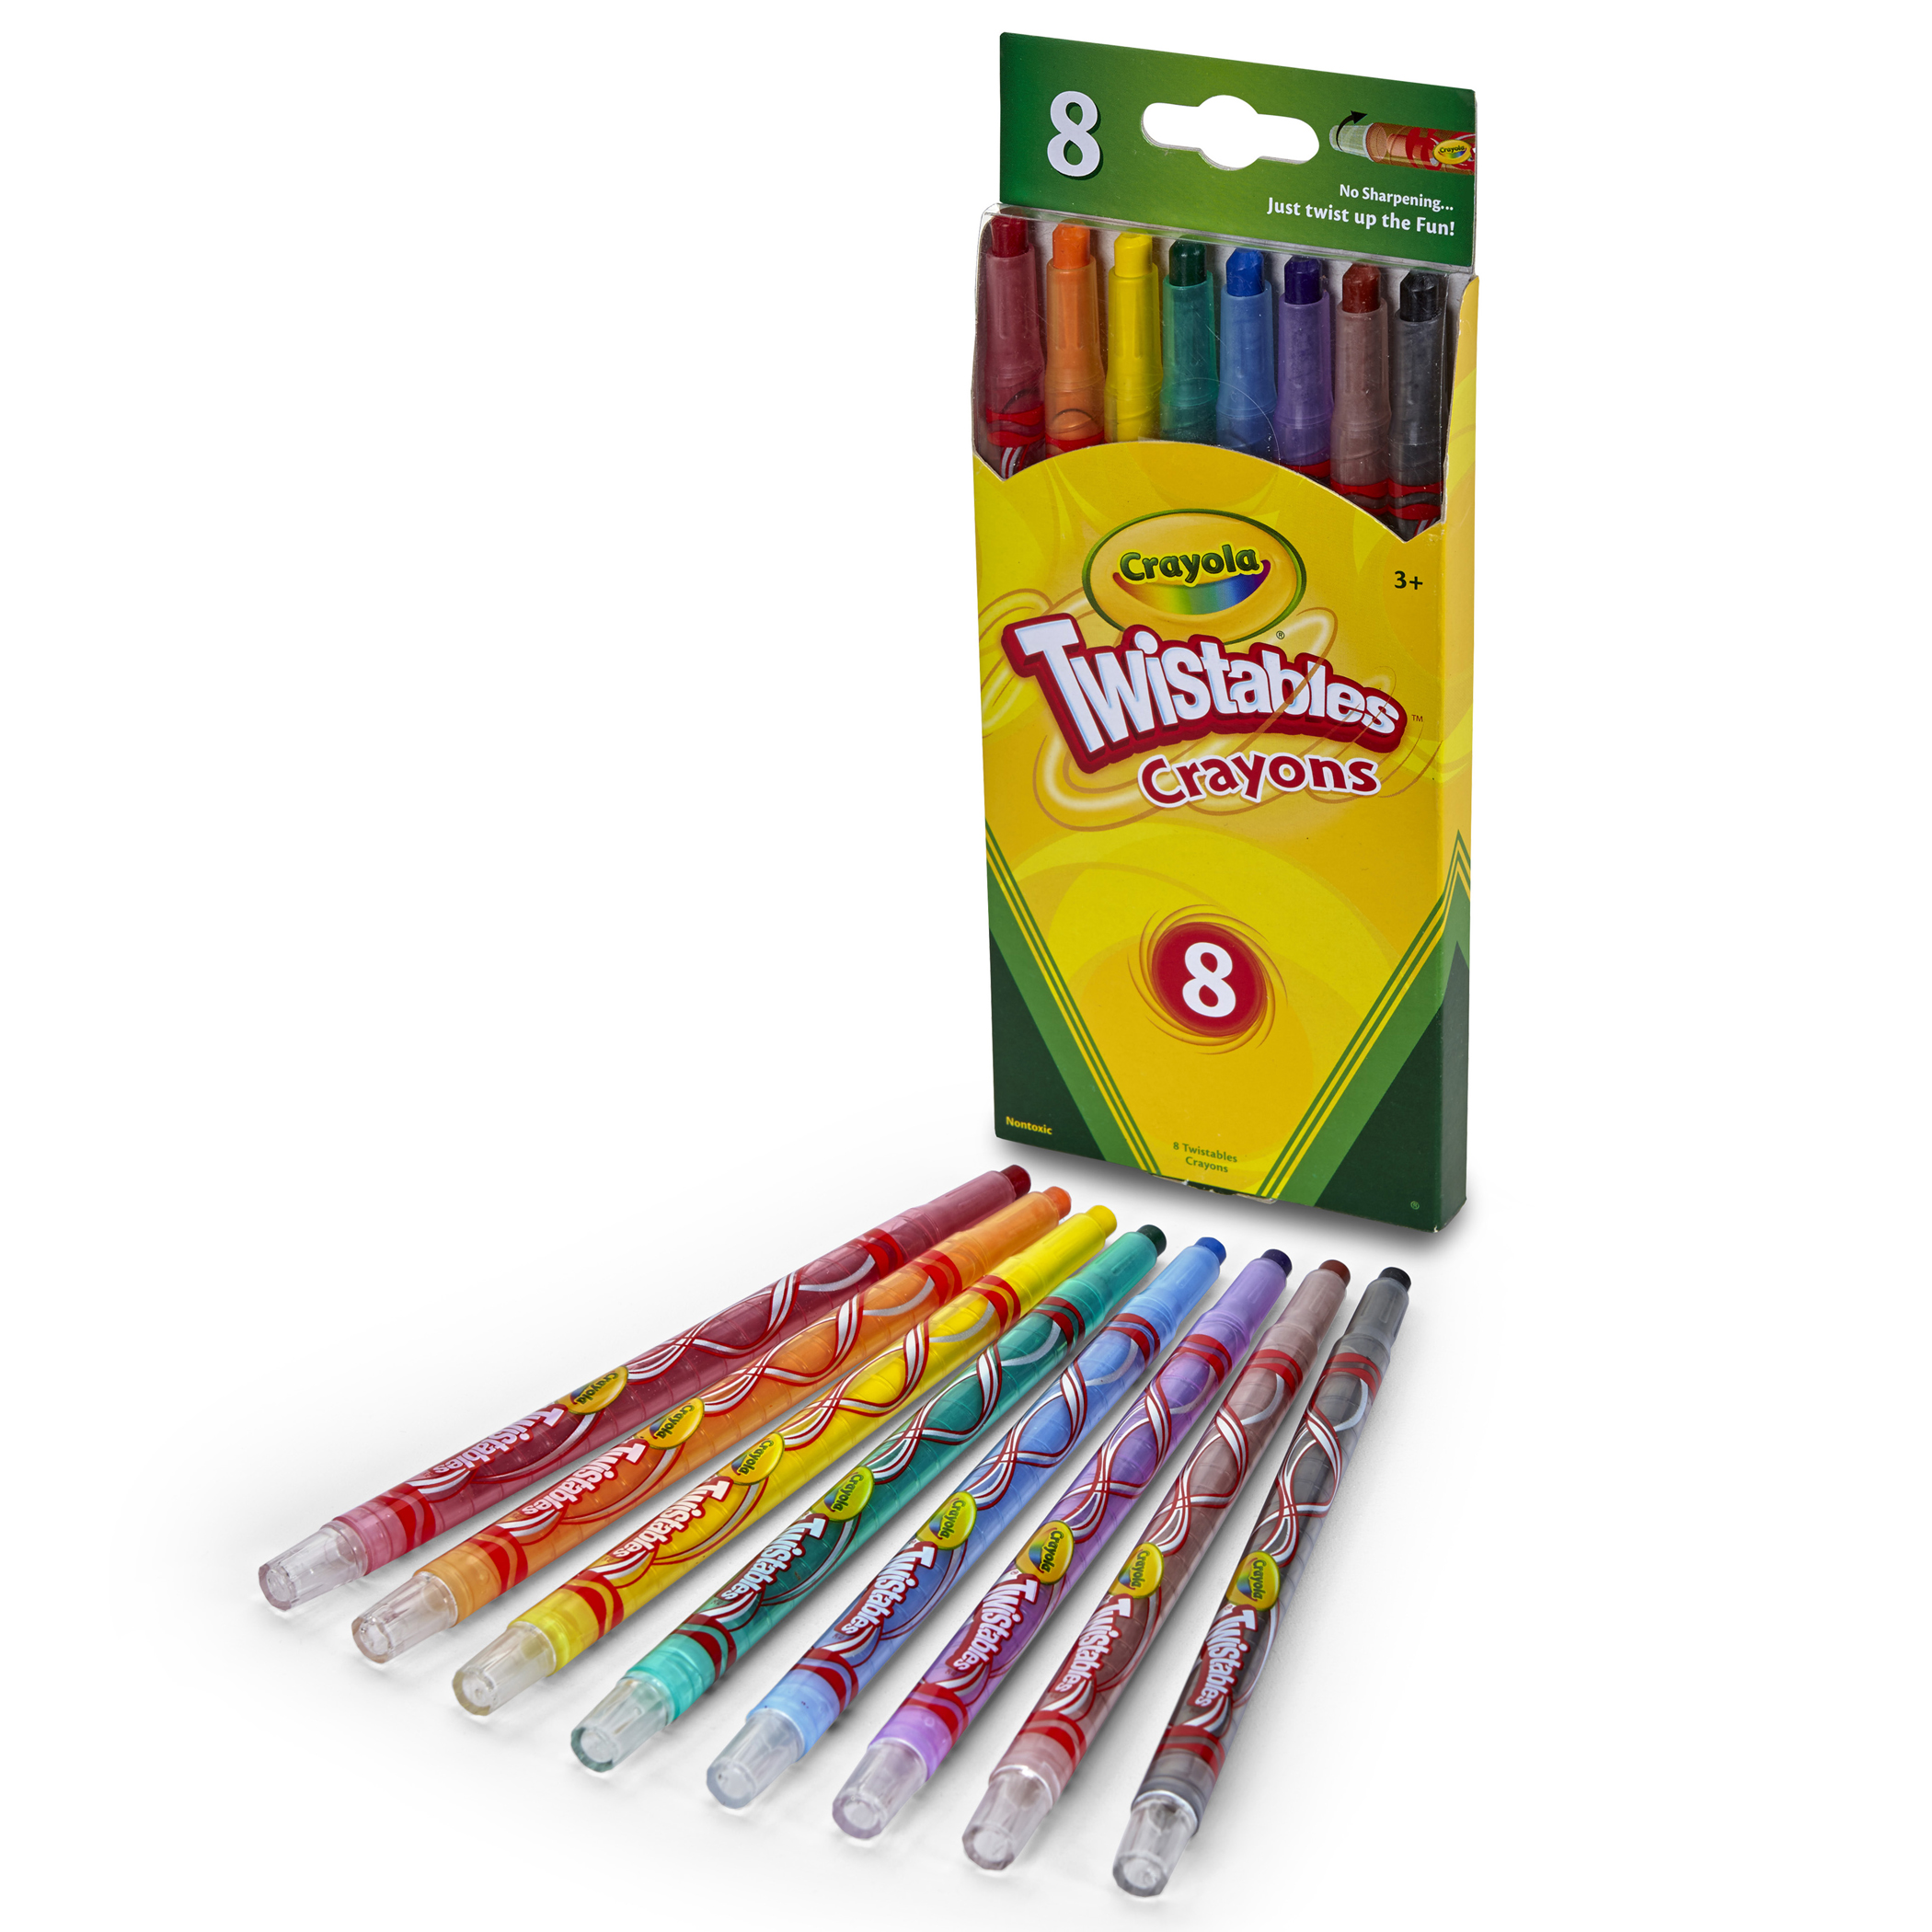 Crayola Twistables Crayons, 8 Colors Per Box, Set Of 8 Boxes